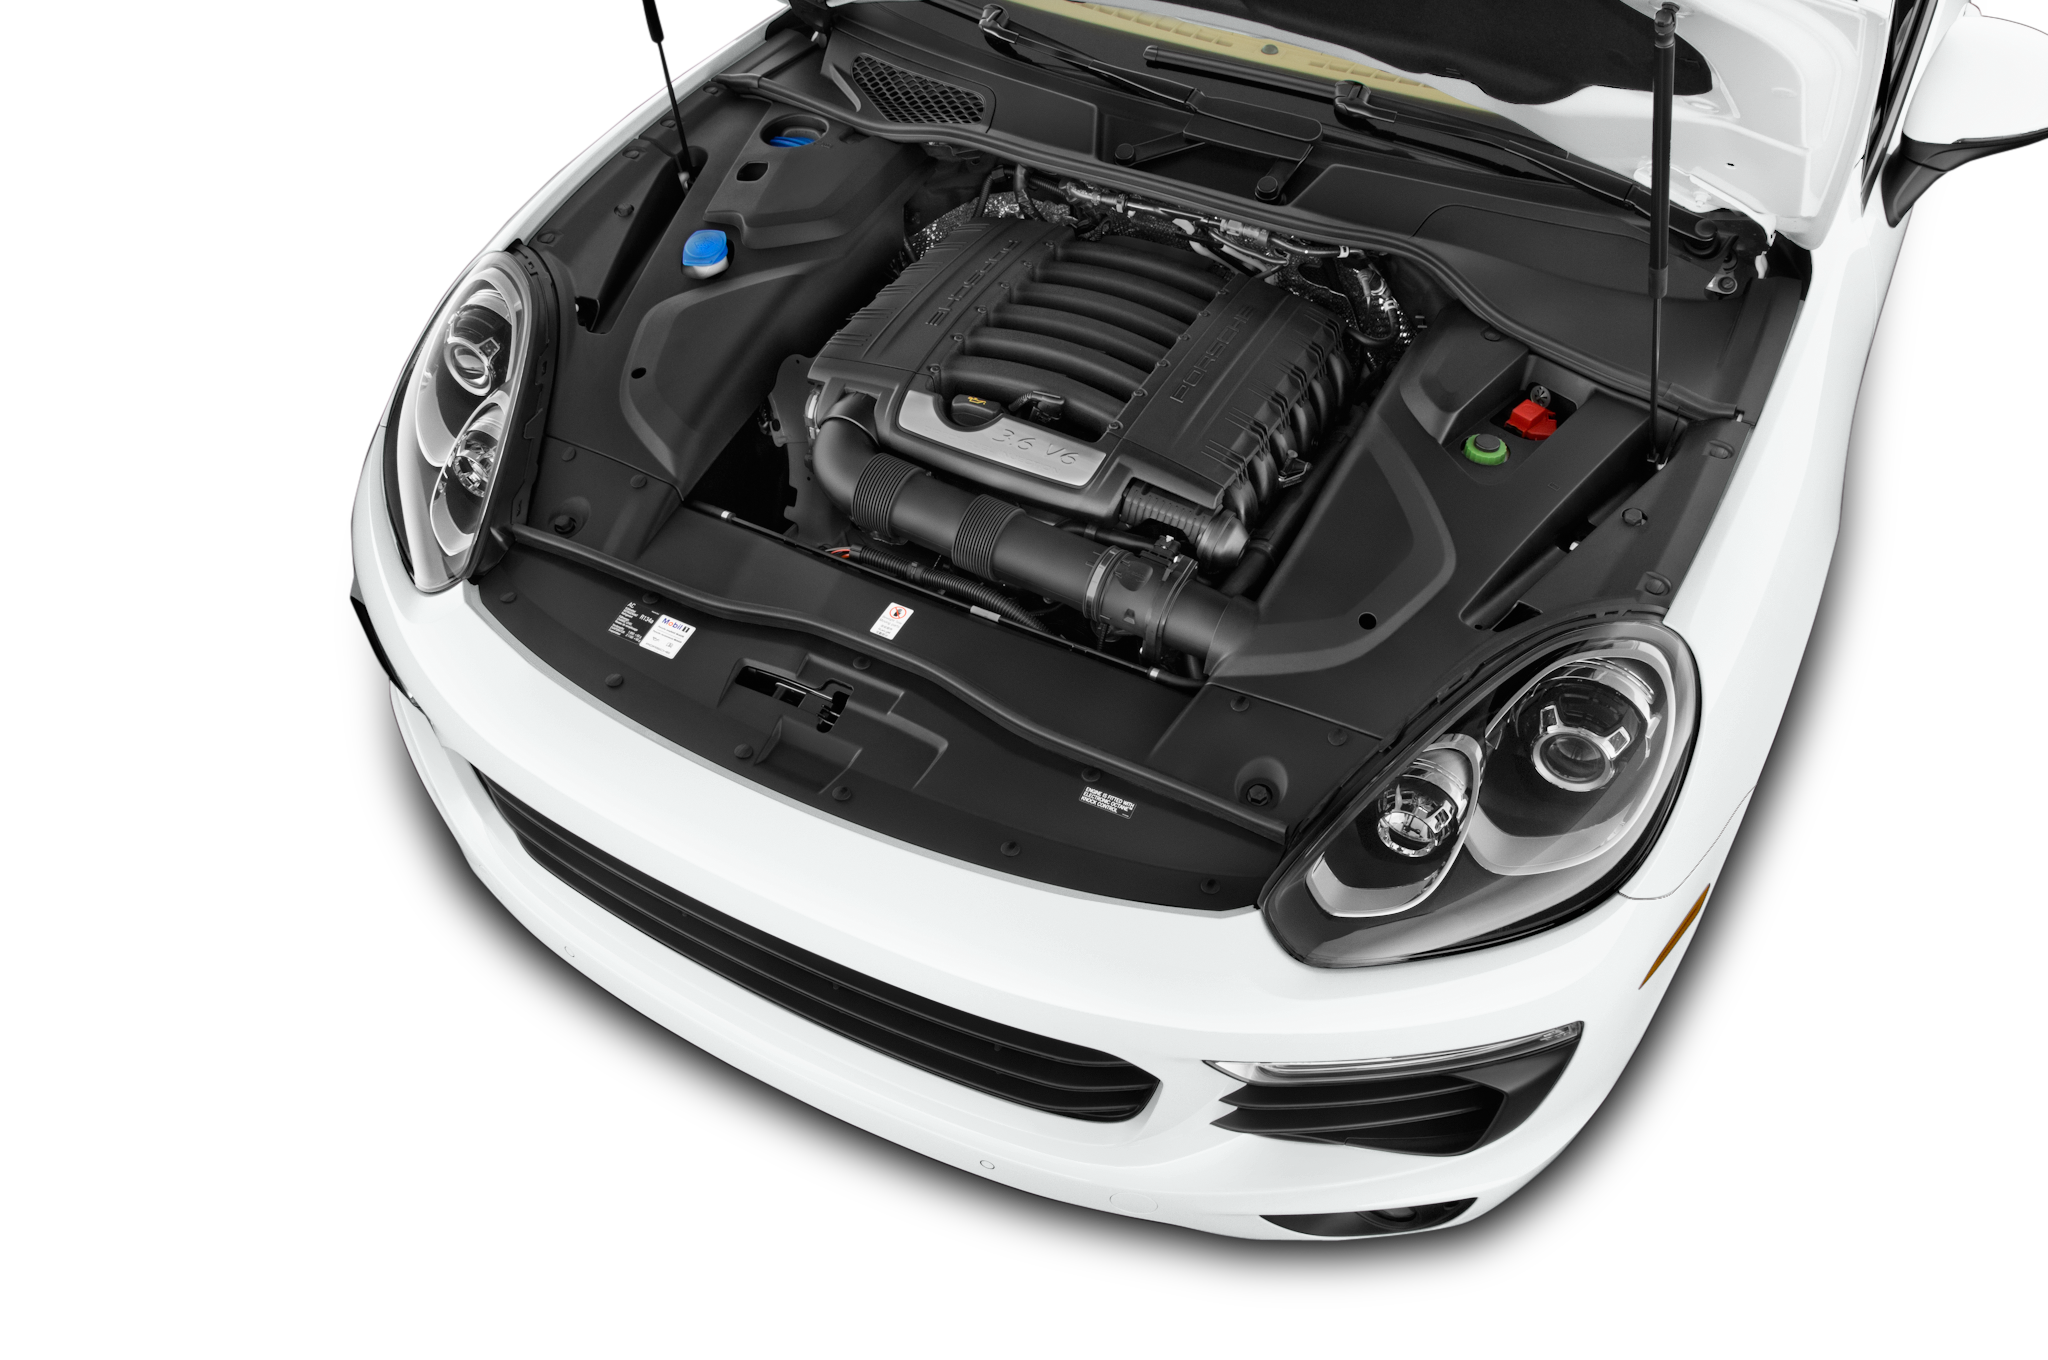 2017 porsche 718 boxster fully revealed with turbo flat. Black Bedroom Furniture Sets. Home Design Ideas